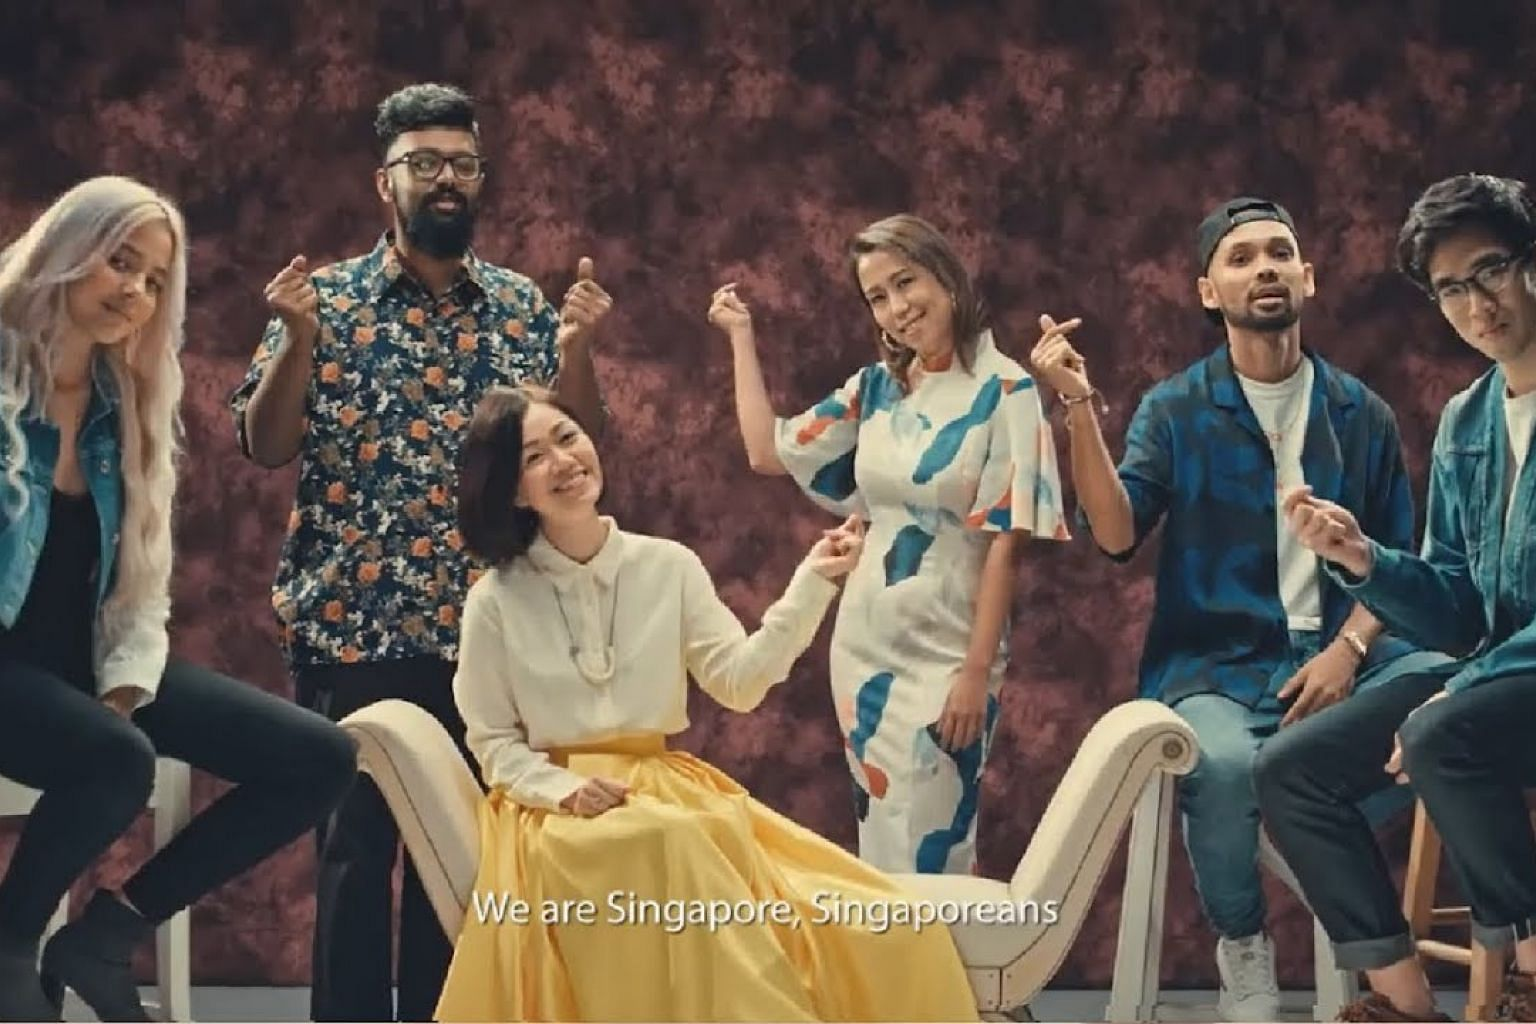 NDP 2018 Theme Song Music Video